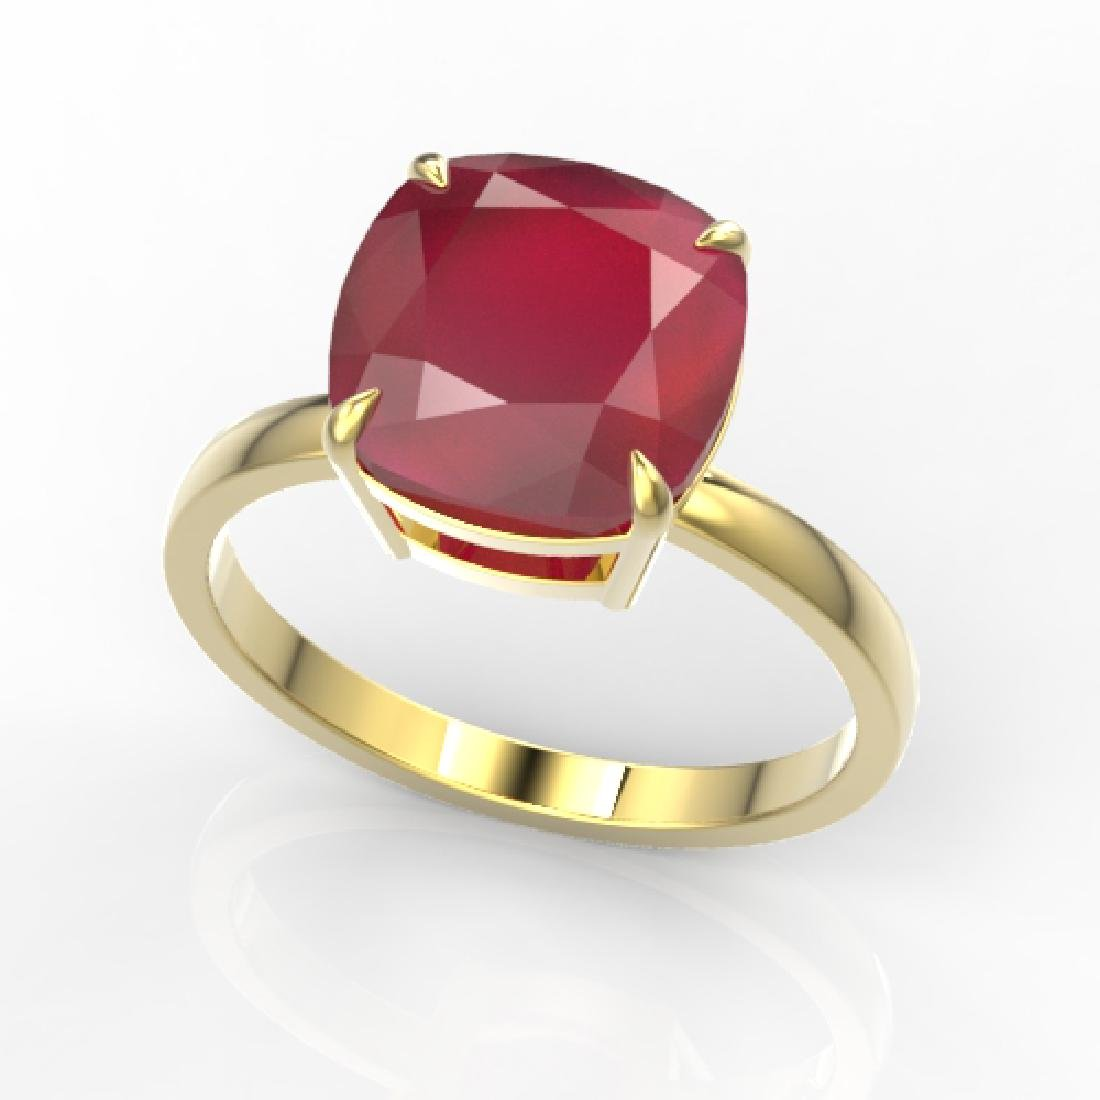 6 CTW Ruby Designer Inspired Solitaire Engagement Ring - 2